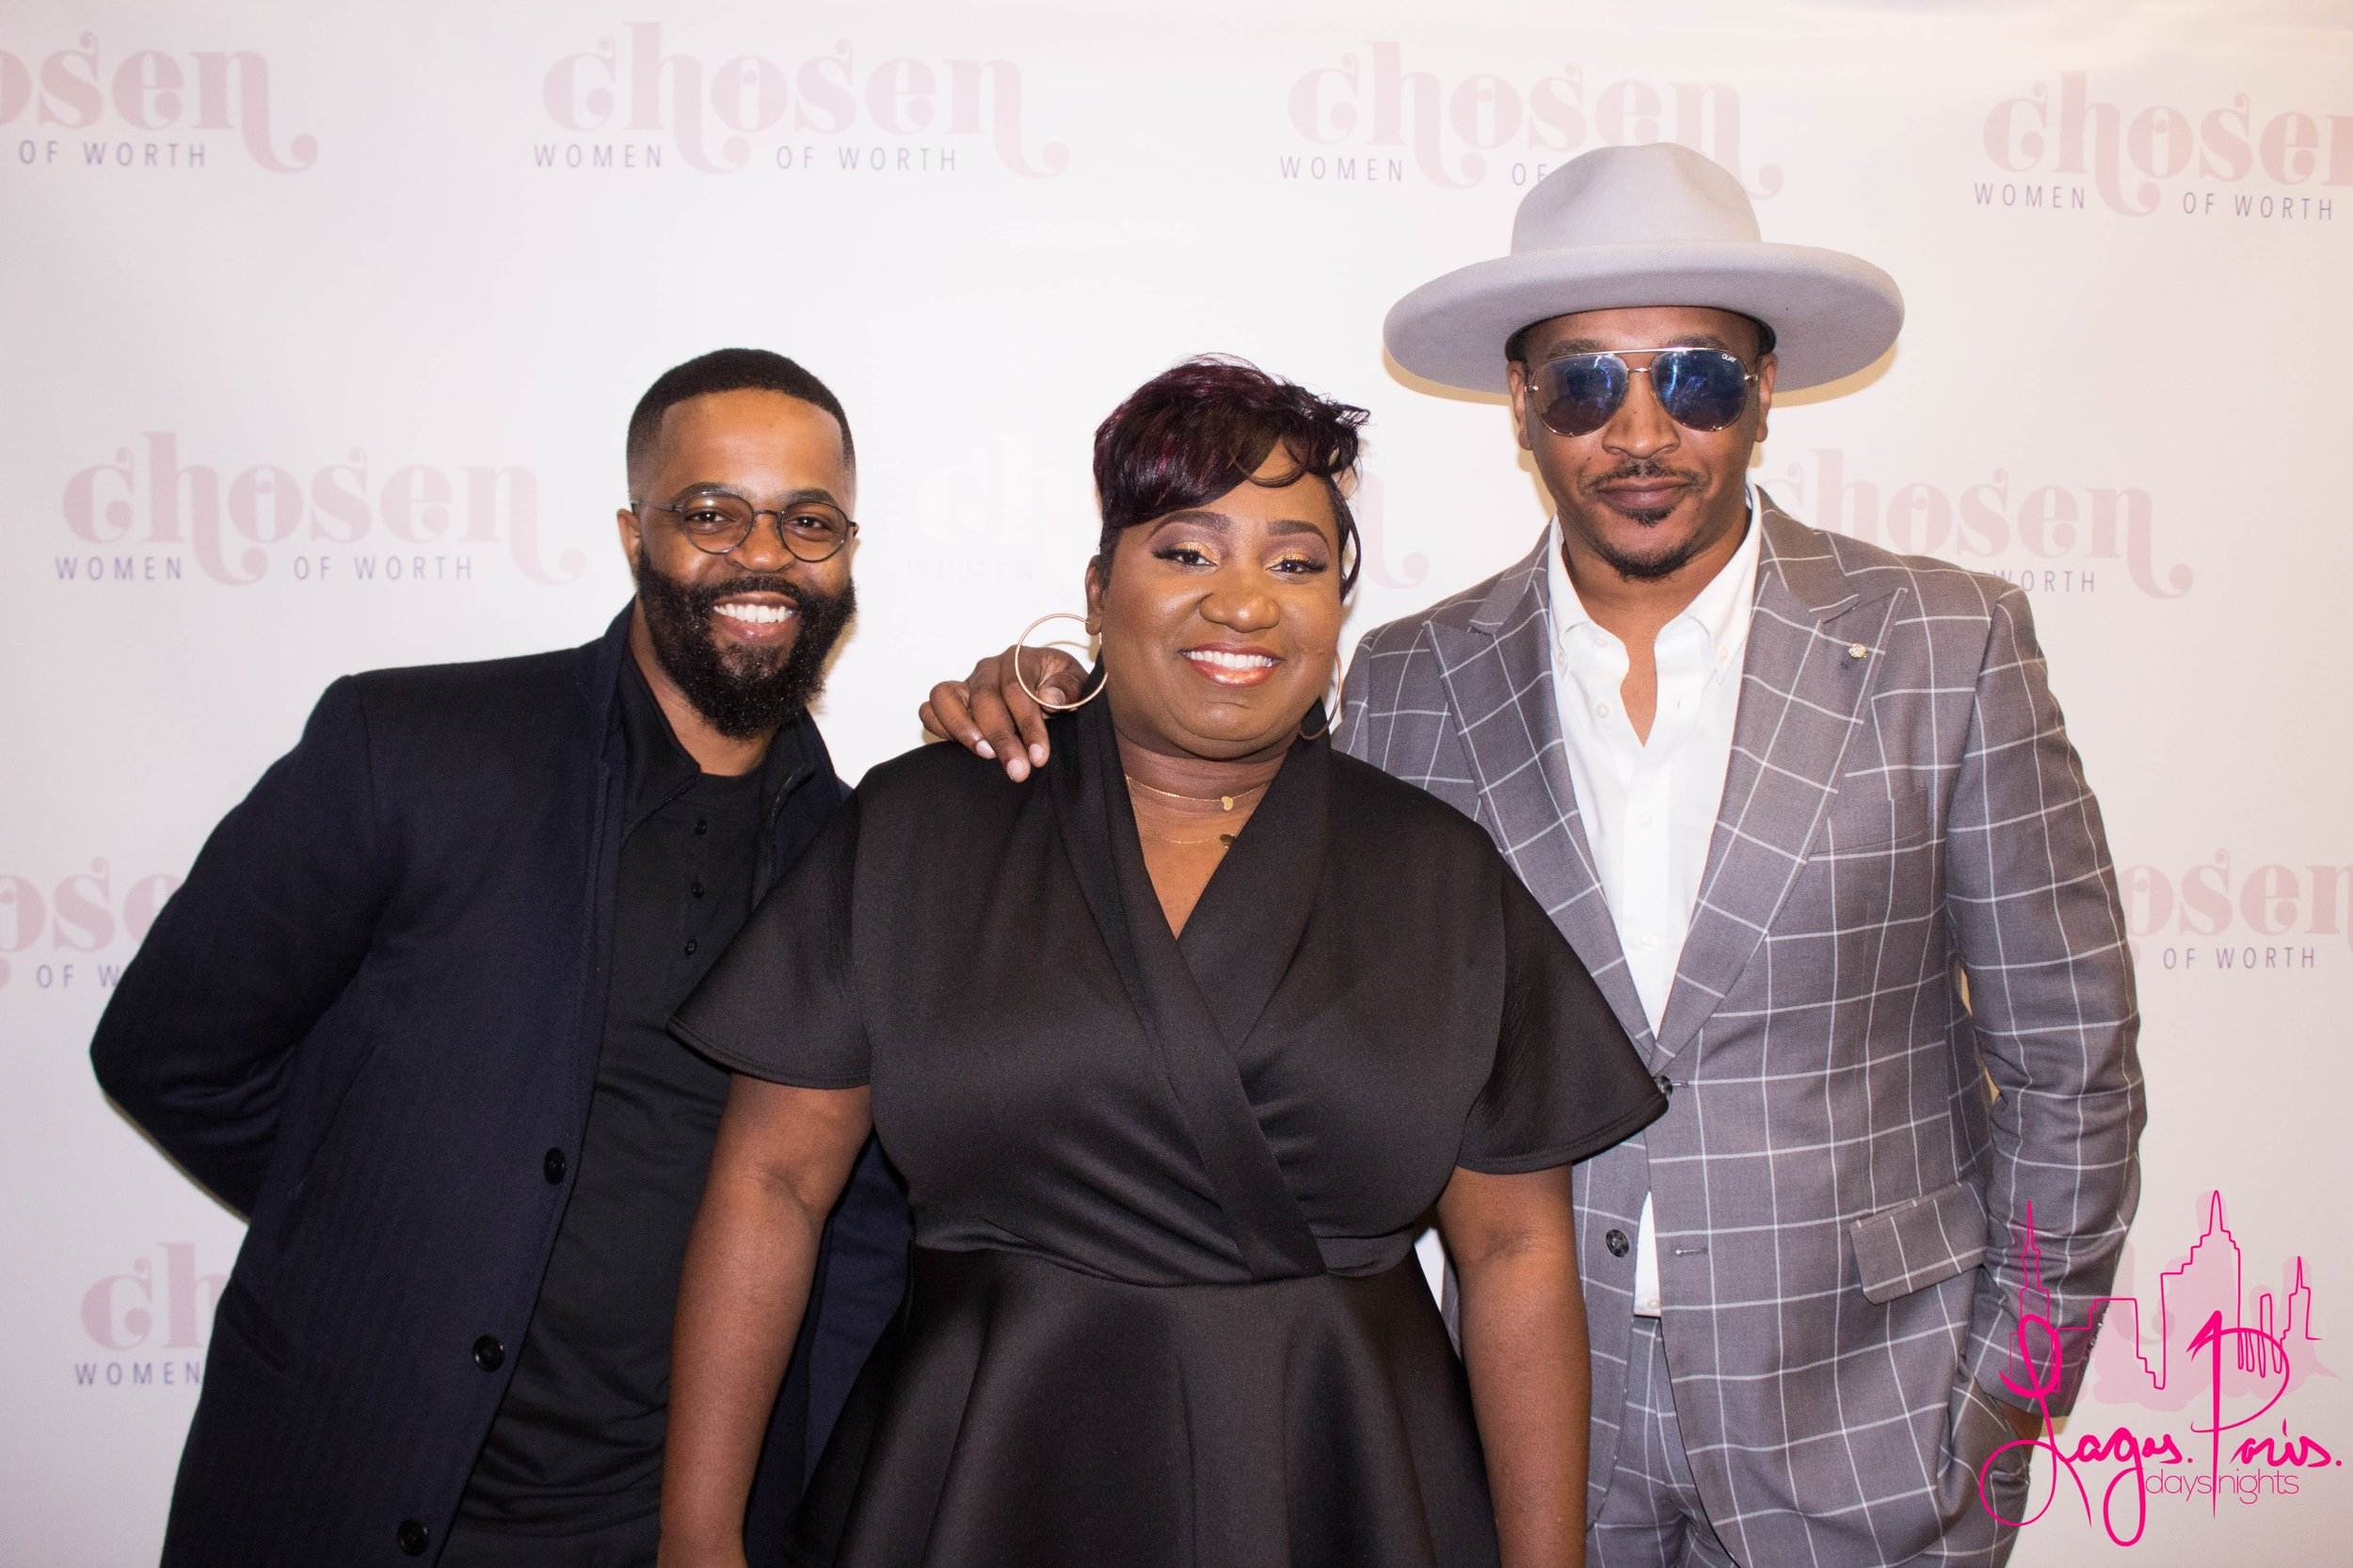 Chosen Women of Worth Founder, Katlyne Dessaint-Louis (center) pictured with her husband Jean Louis (left) and Stylist J. Bolin (right).